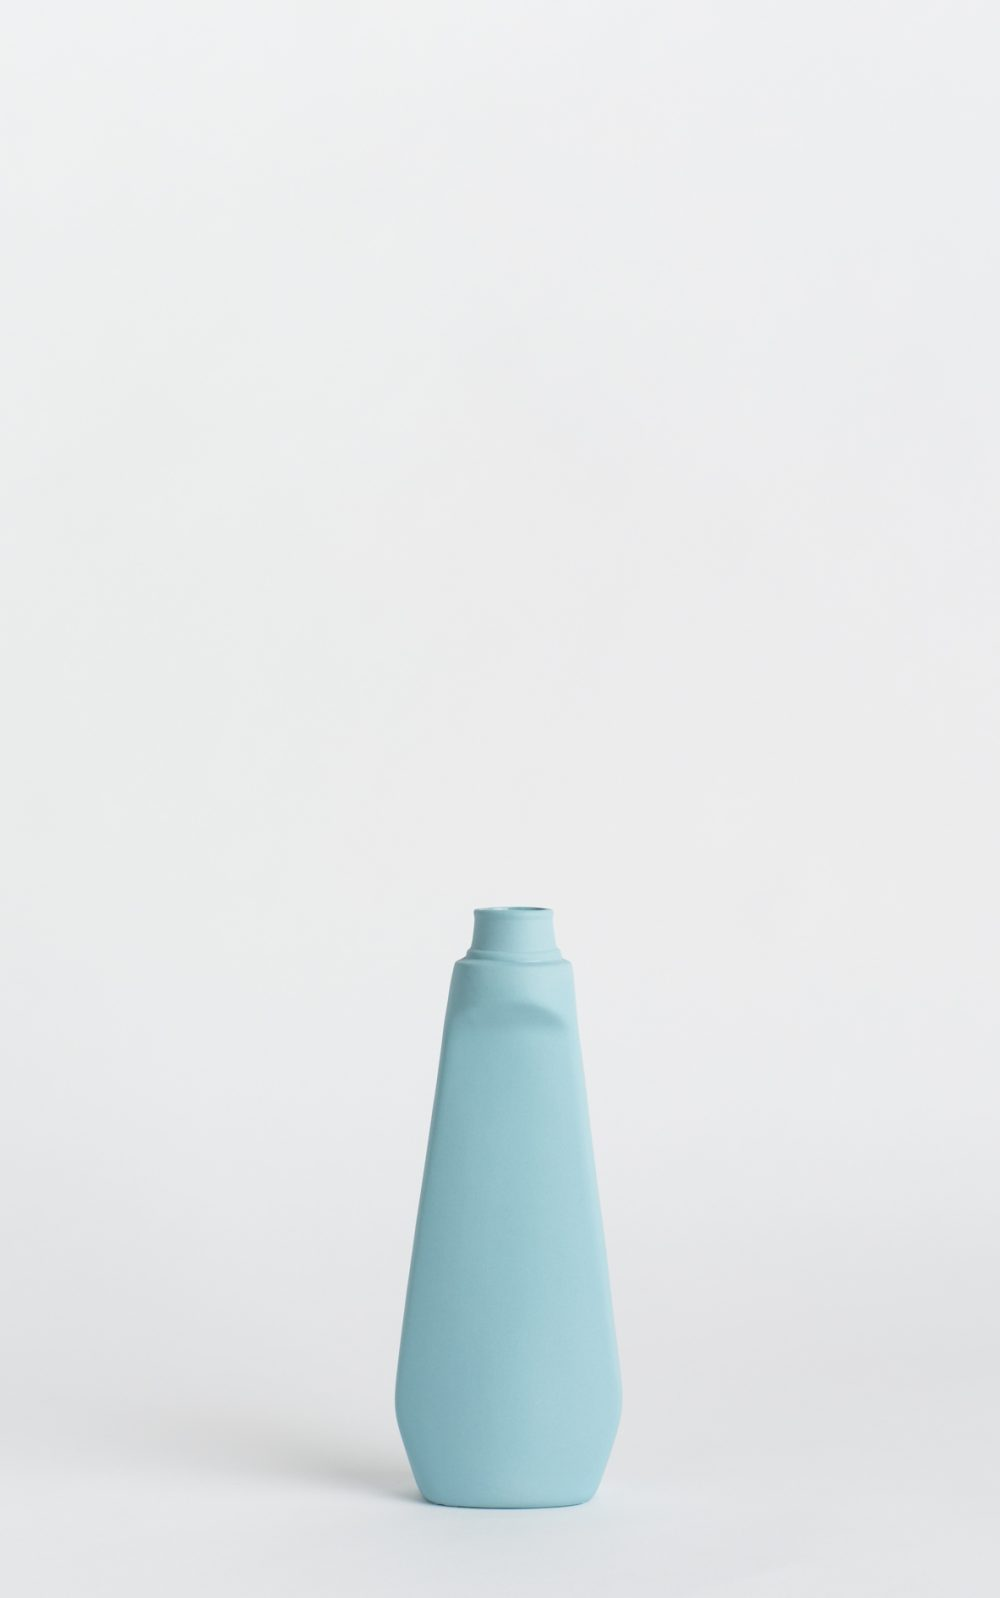 bottle vase #4 light blue